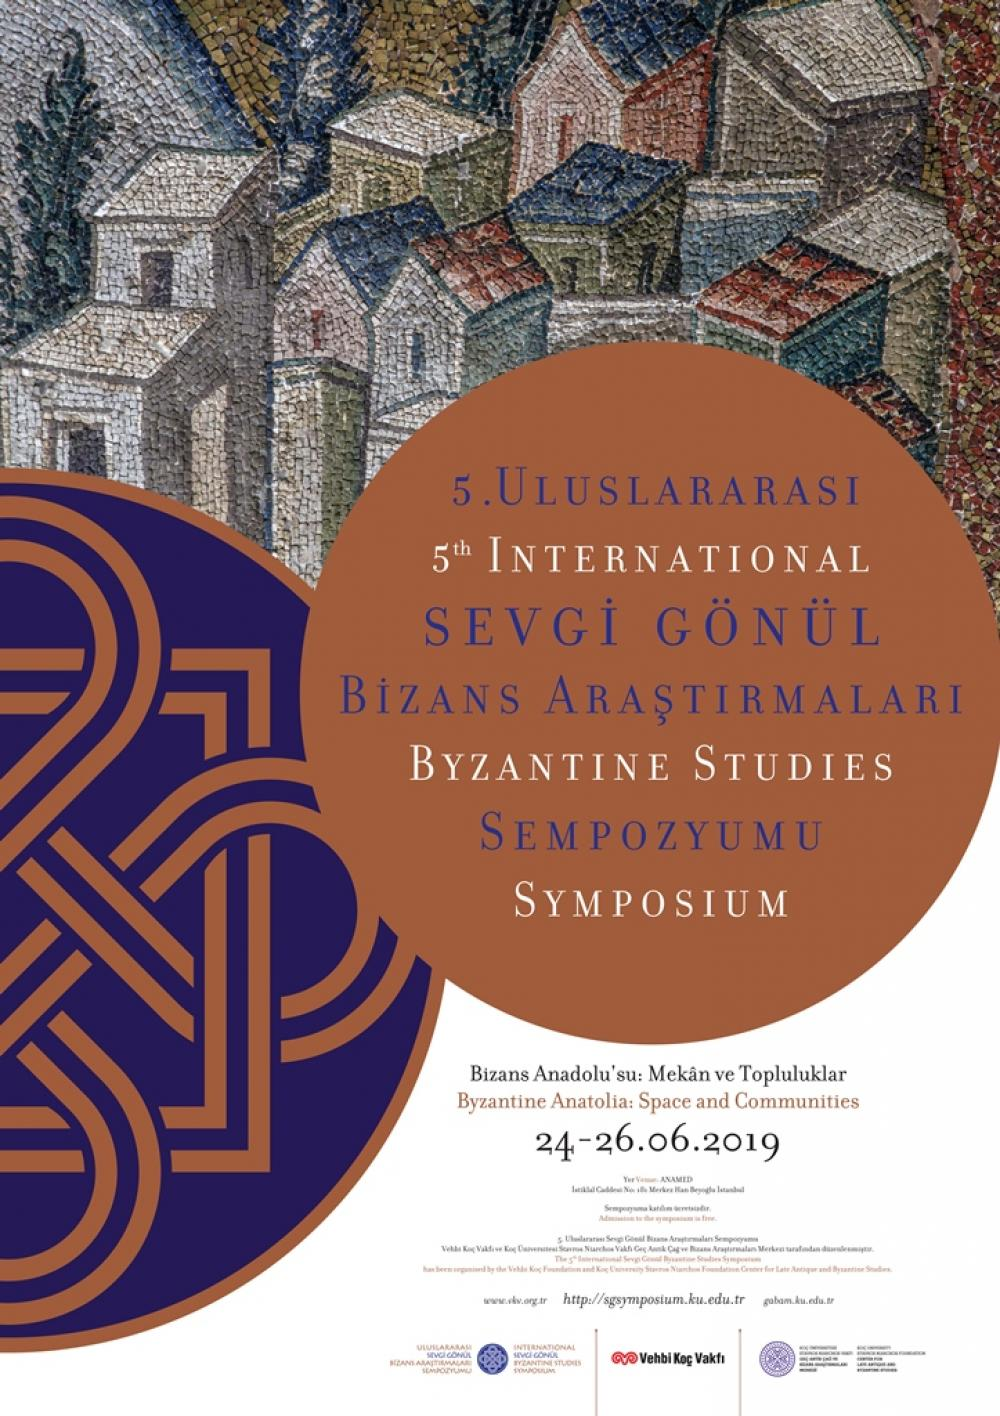 Fifth International Sevgi Gonul Byzantine Studies Symposium